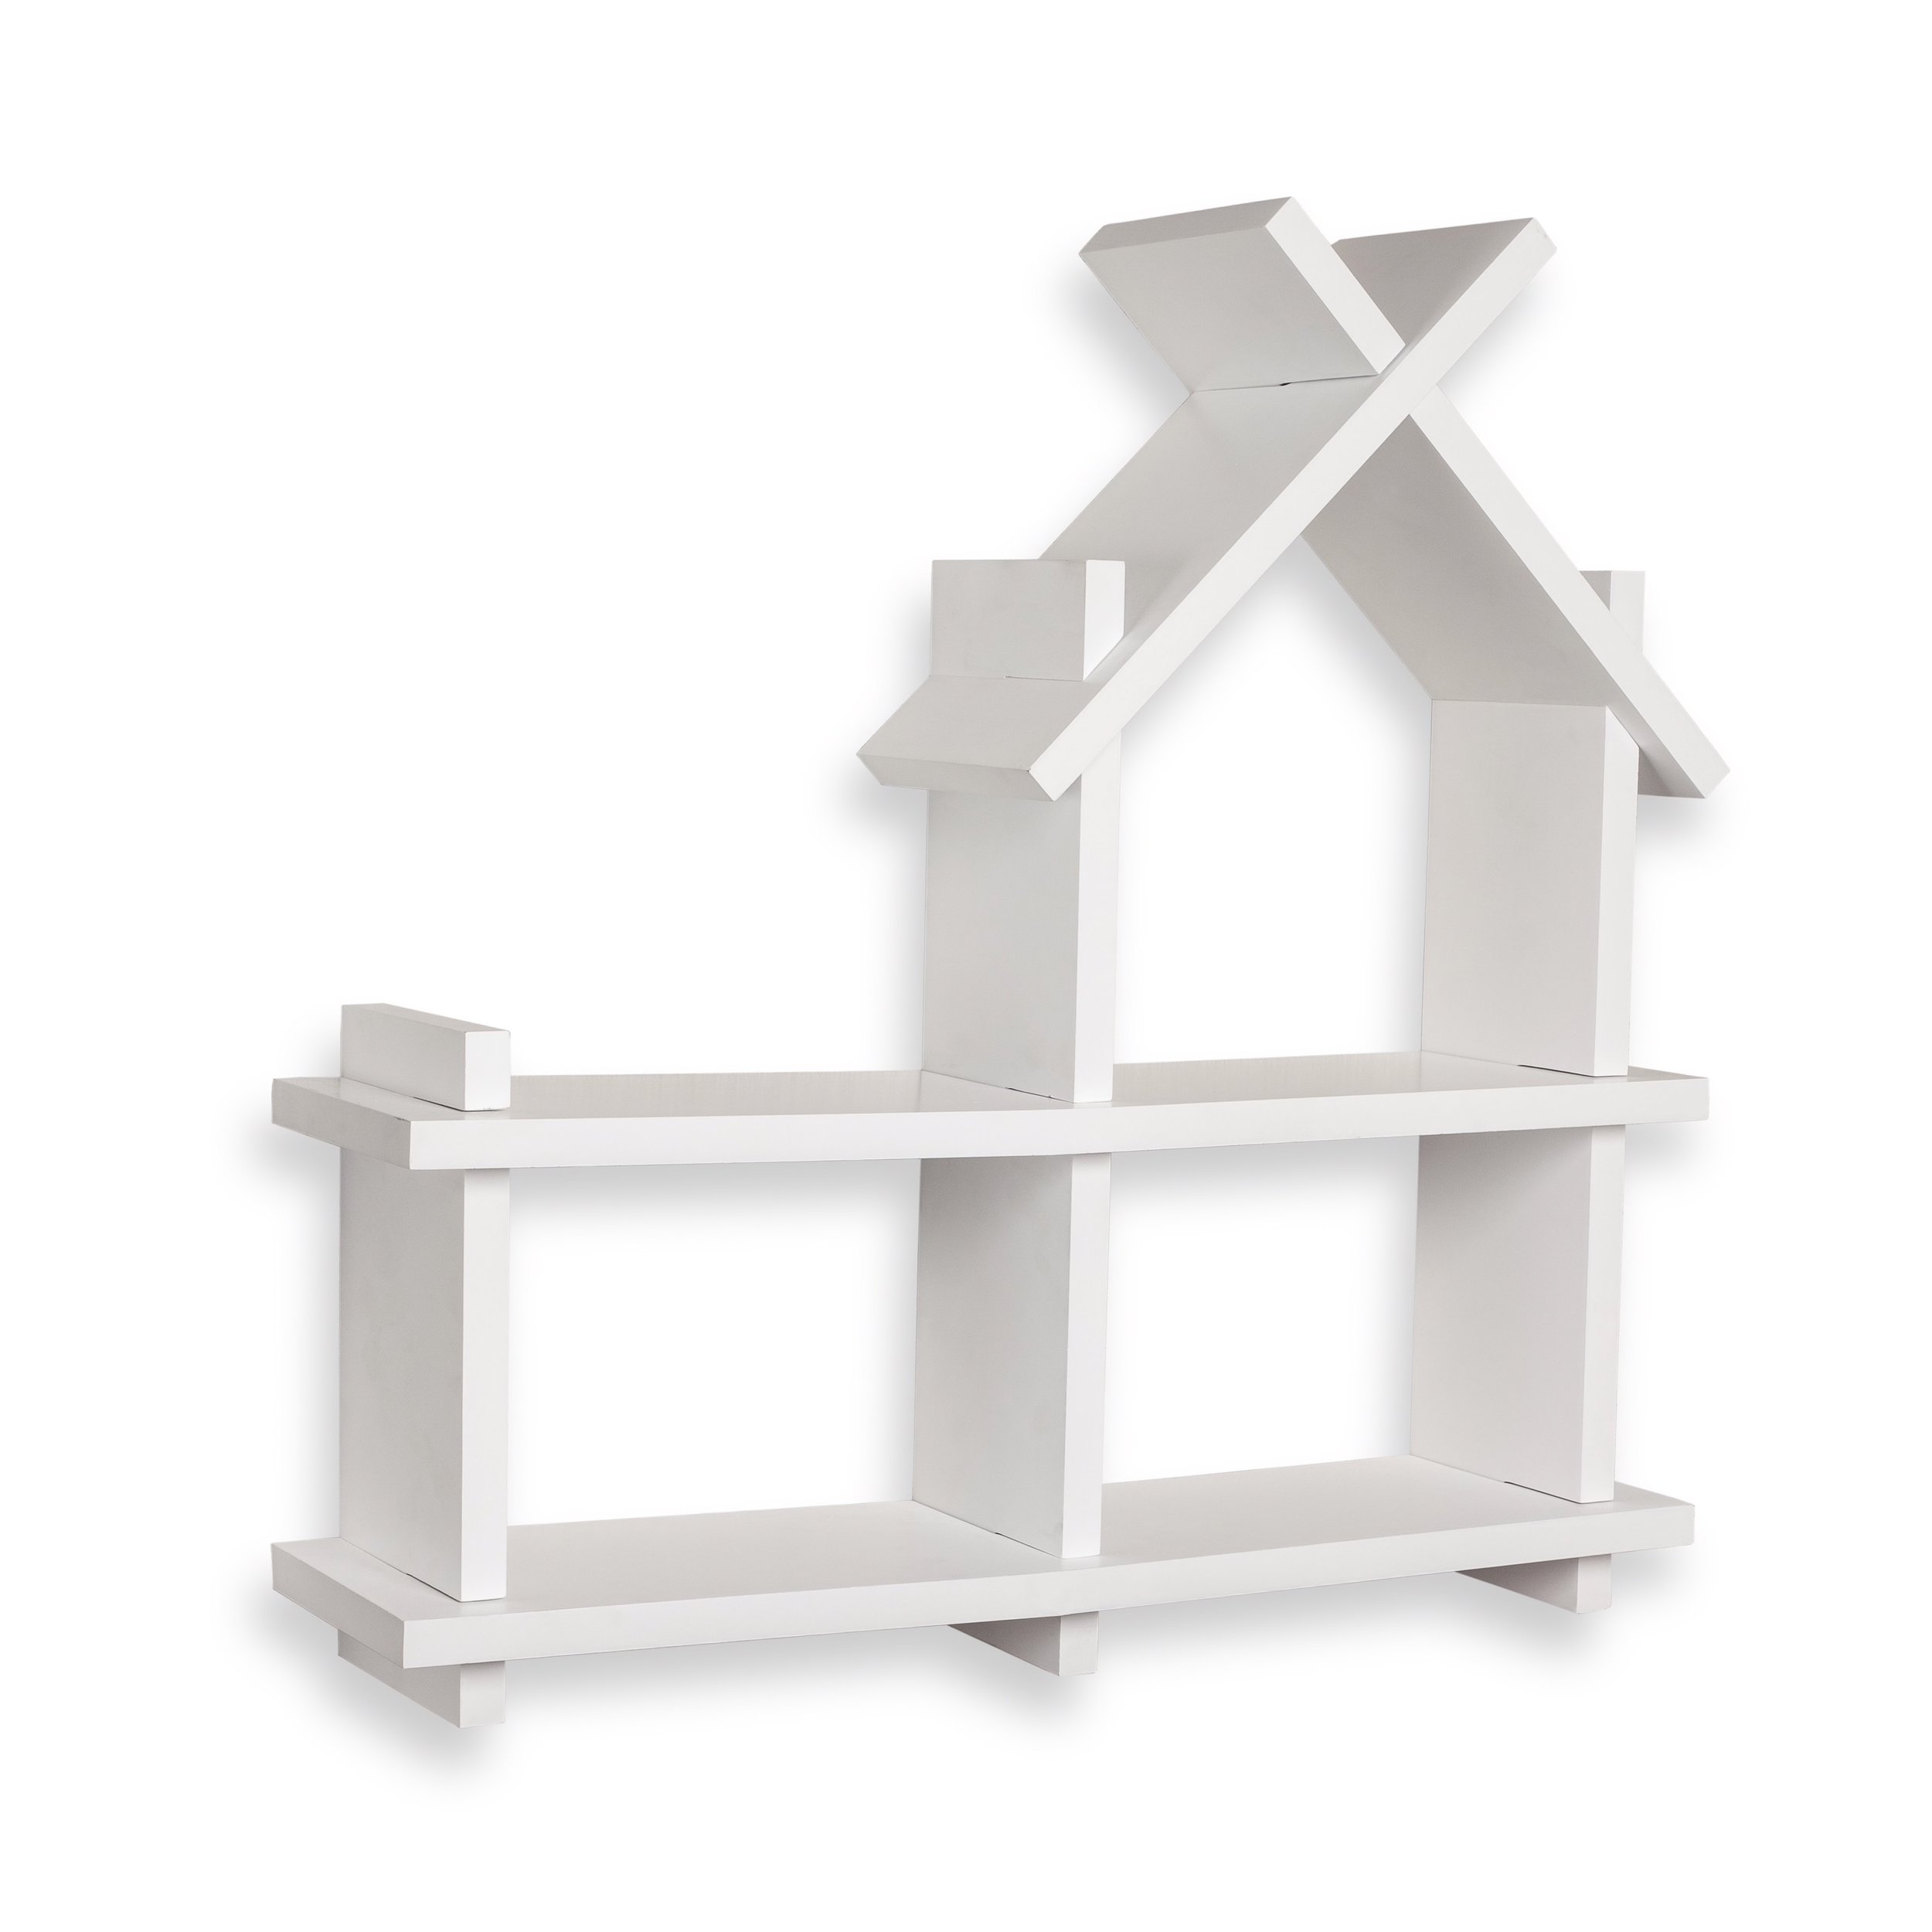 Danya-B-House-Design-White-Wall-Shelf-eded750e-d04d-4e85-a080-237ca8f8ba63.jpg copy.jpg